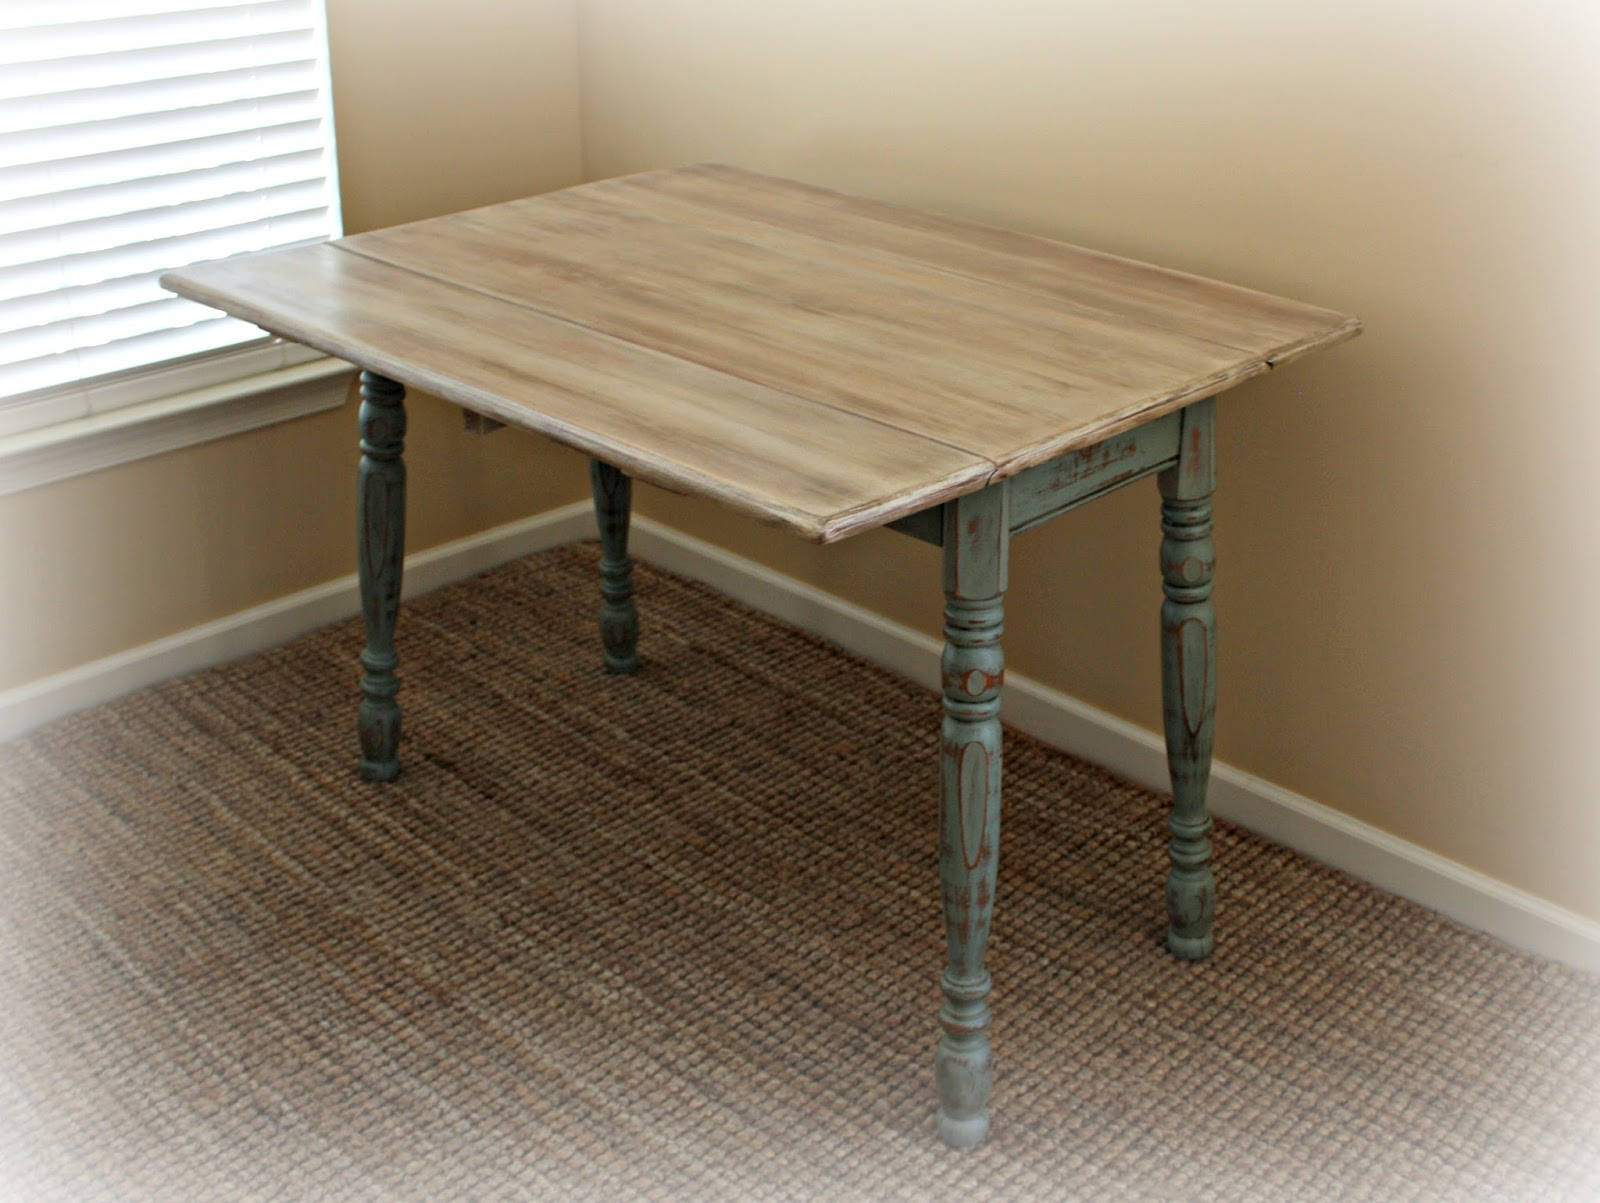 Extra surface space with the table leaves extended.